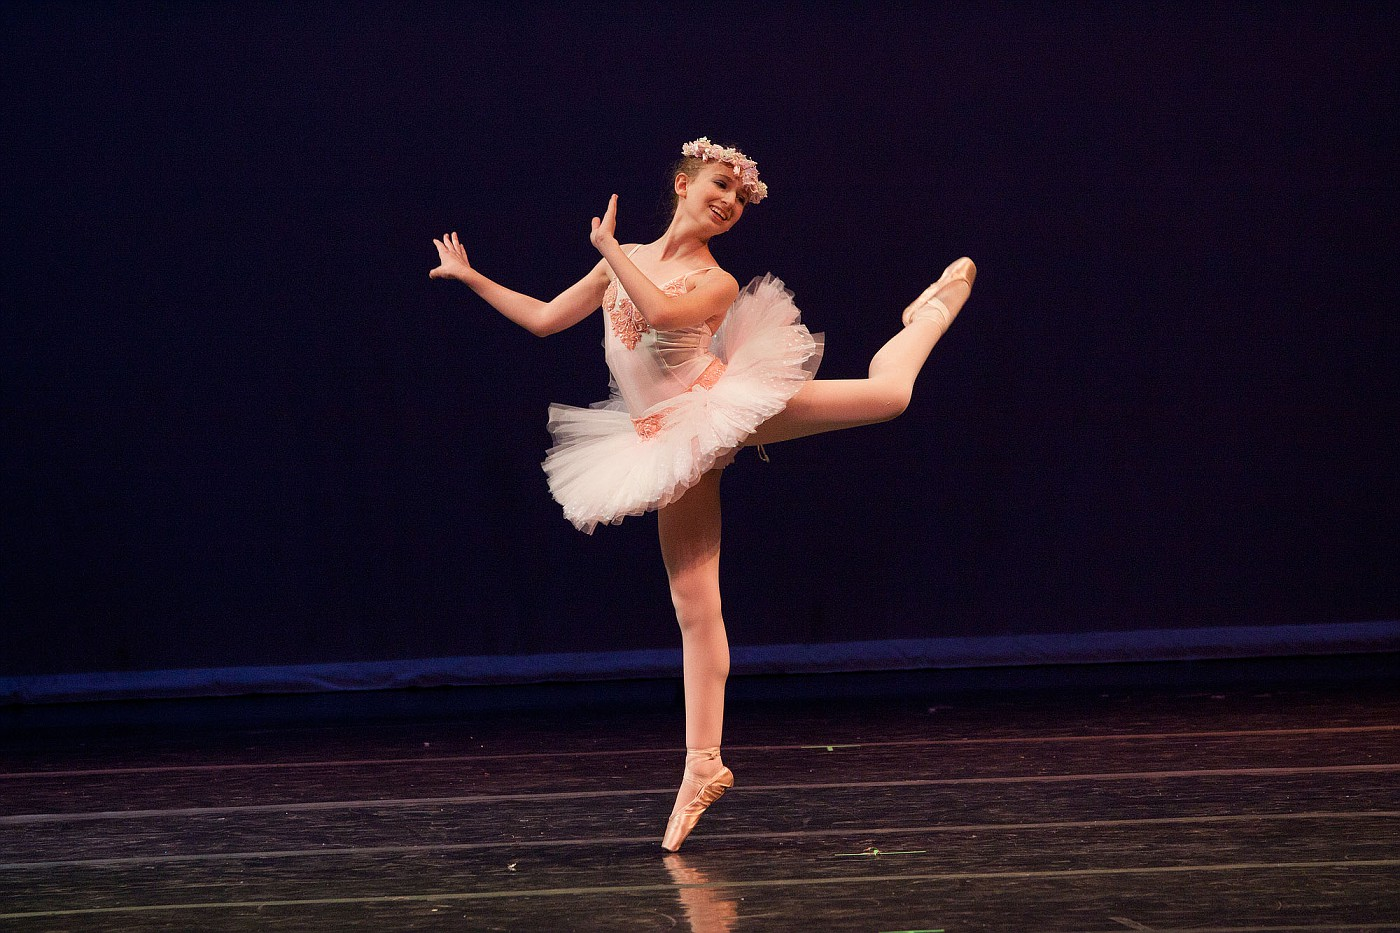 portrait-photography-children-ballet-20100617_0056.jpg